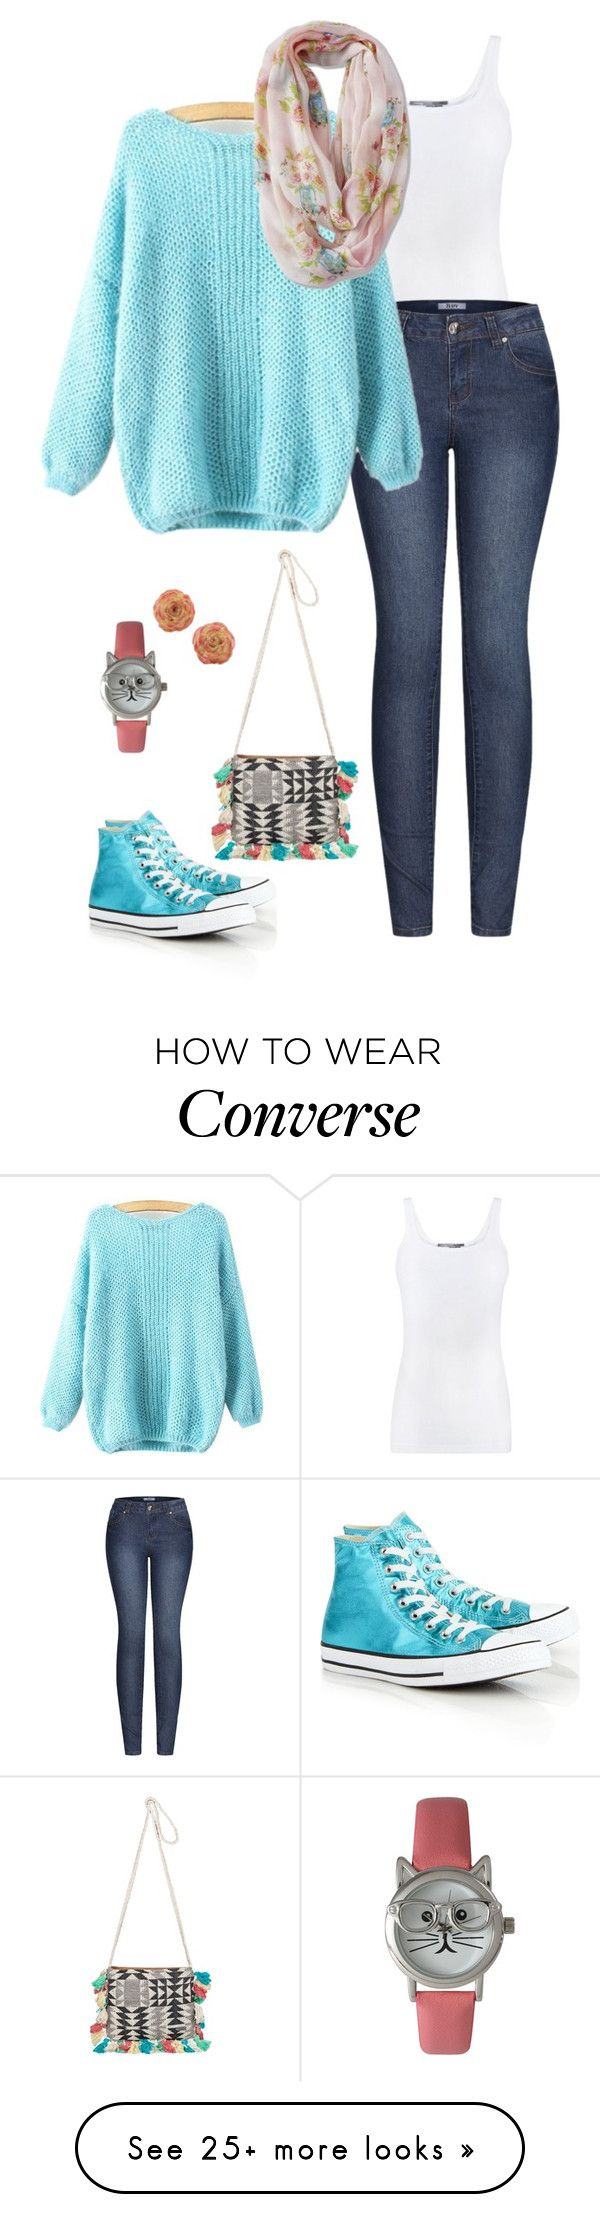 """""""Geen titel #879"""" by miriam-witte on Polyvore featuring Vince, 2LUV, Converse, Roxy, Olivia Pratt and NOVICA"""